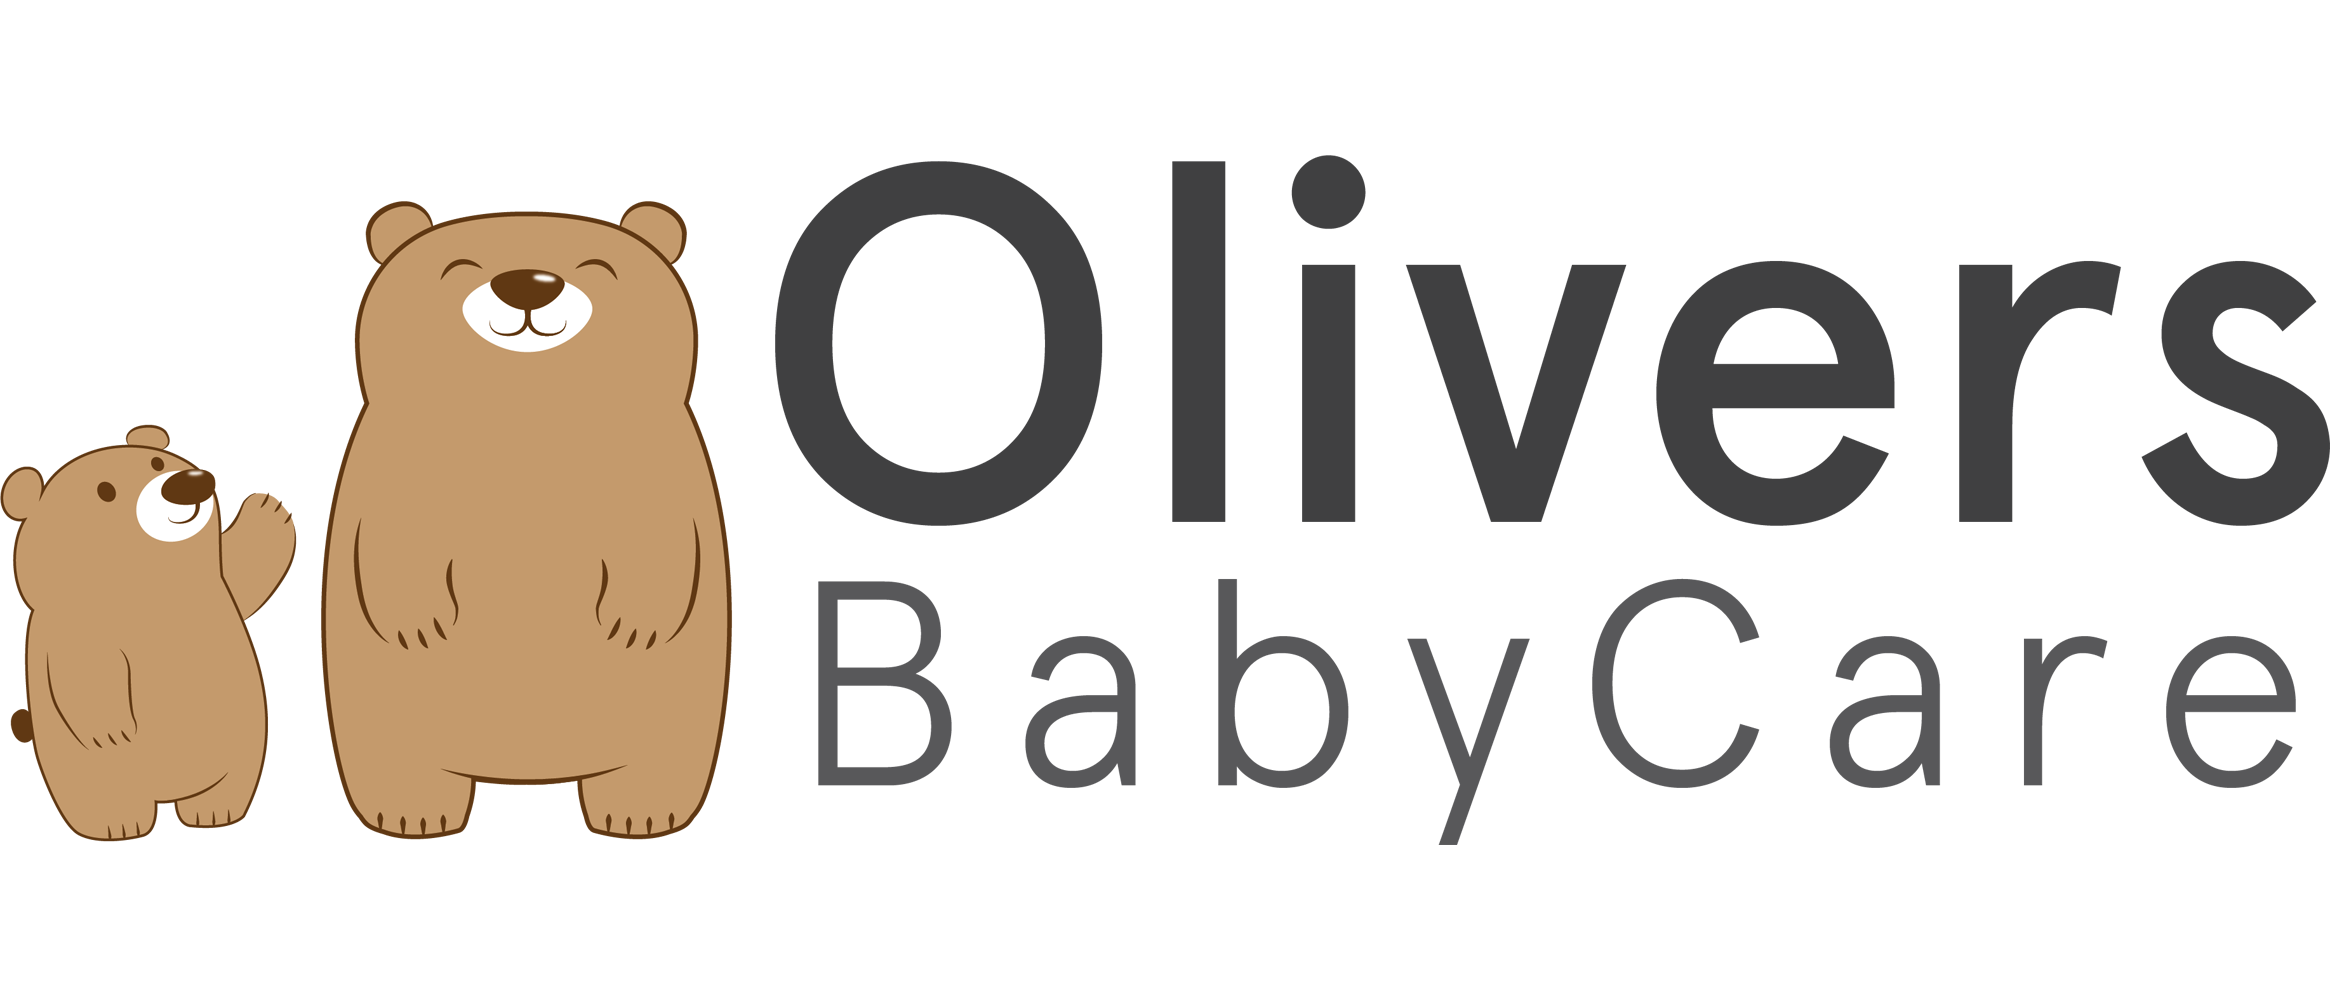 OliversBabyCare.co.uk